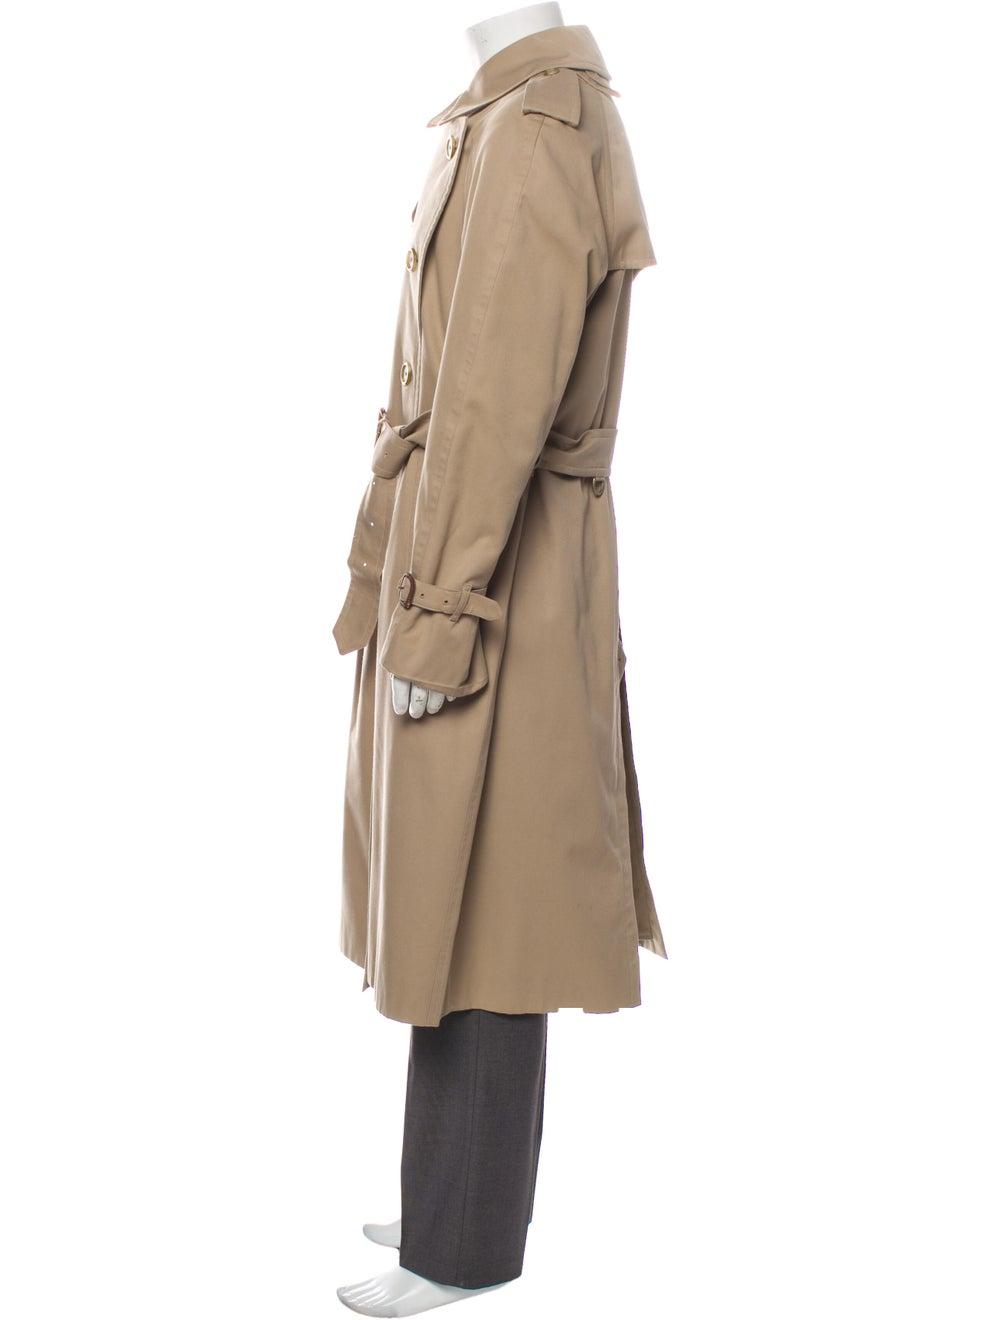 Burberry Trench Coat - image 2